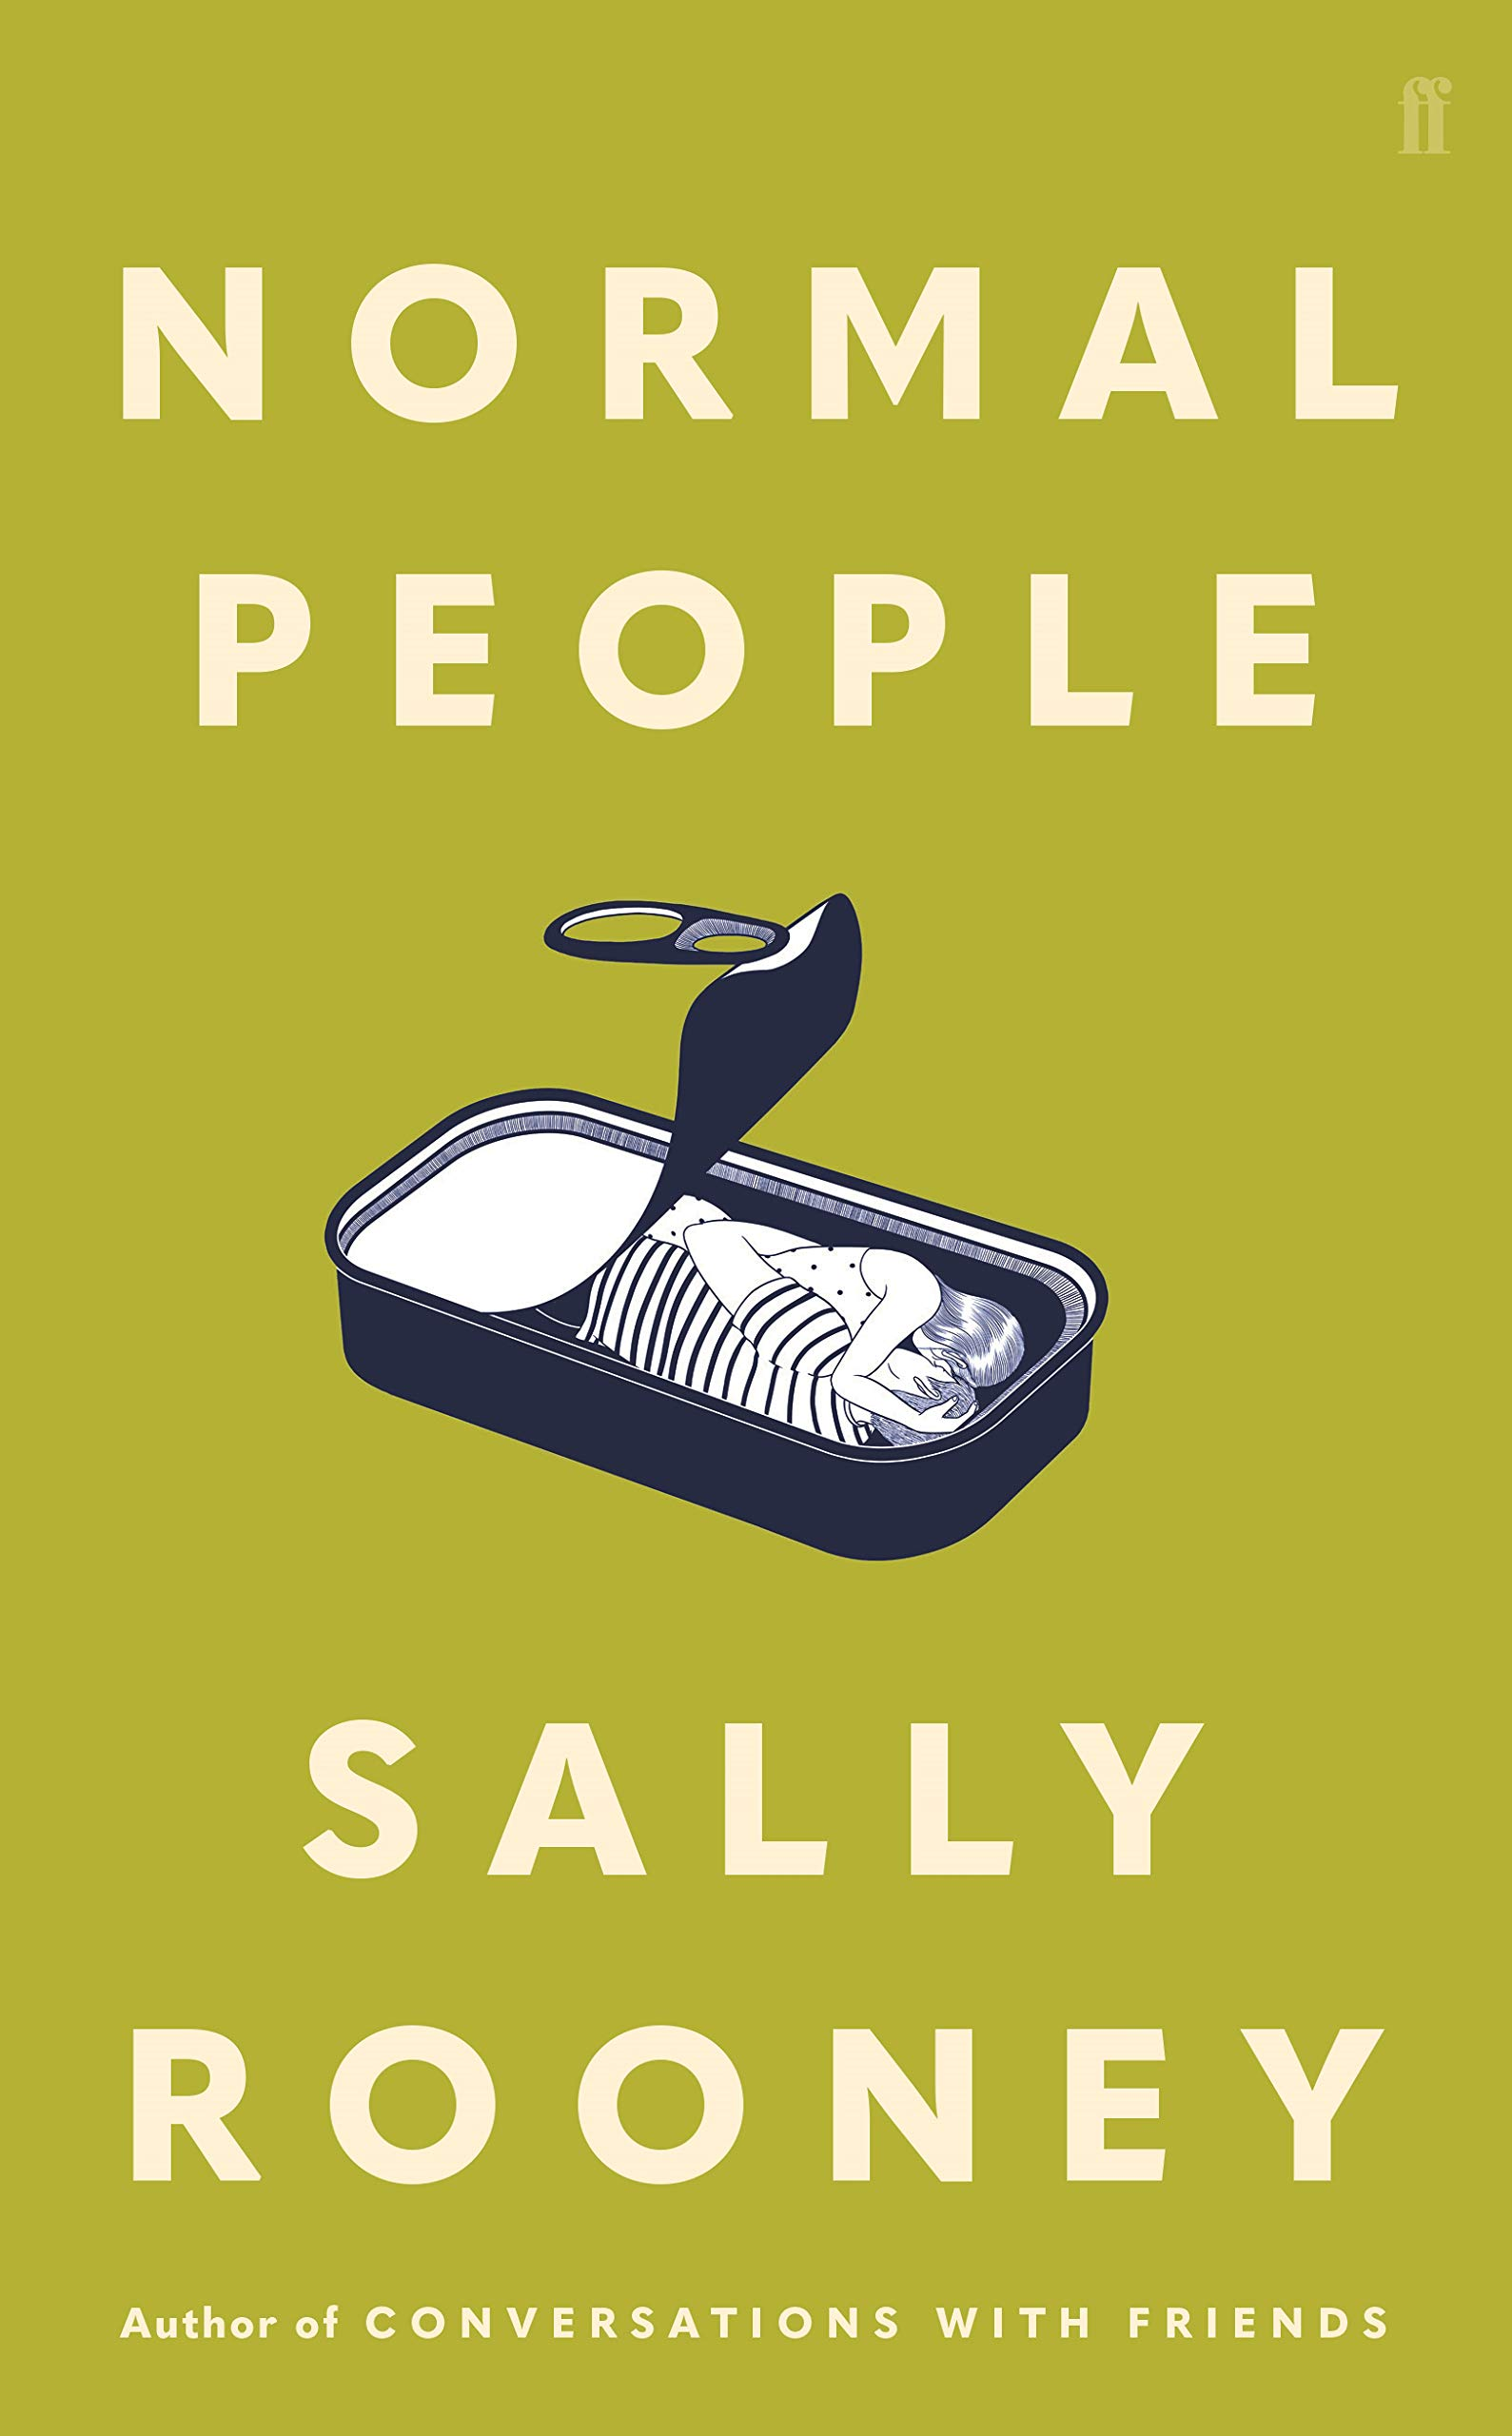 Image result for normal people sally rooney